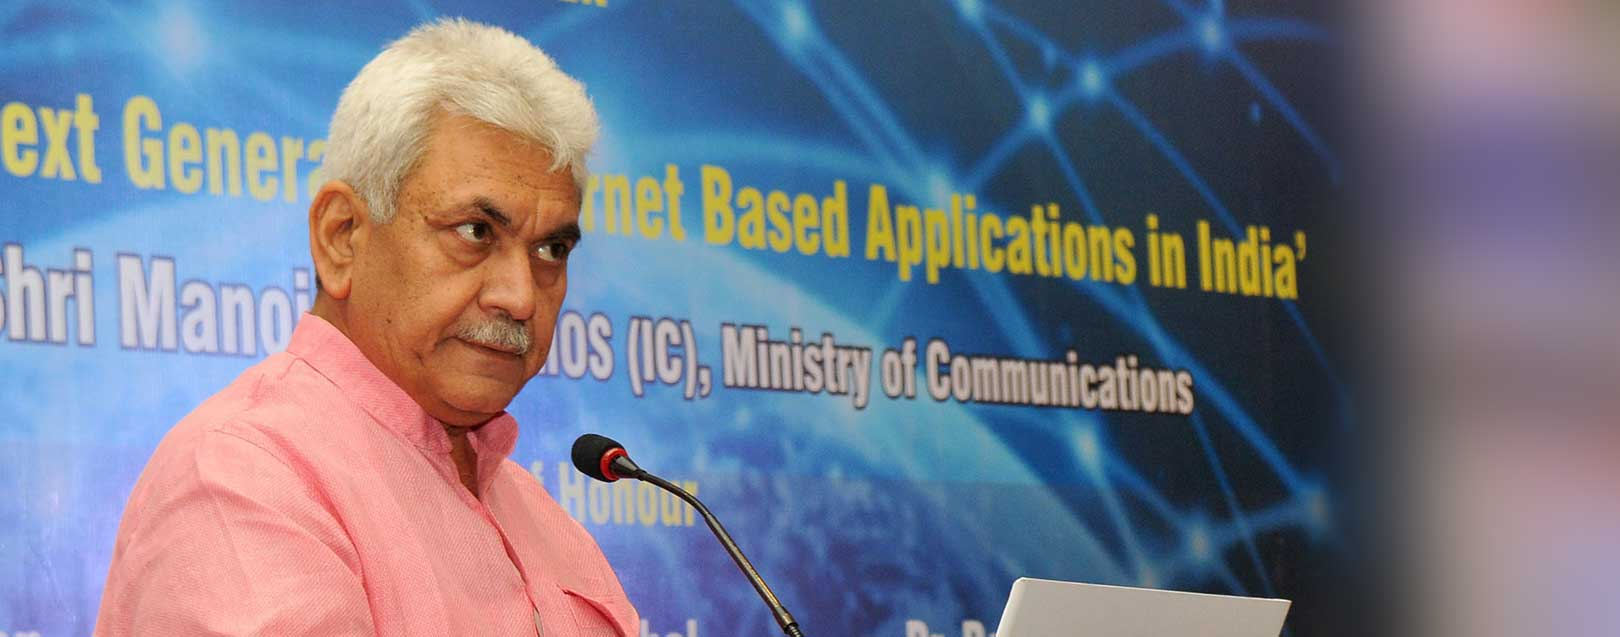 Indian Telecom Market is expected to cross the Rs 6.6 trillion revenue mark by 2020, Manoj Sinha